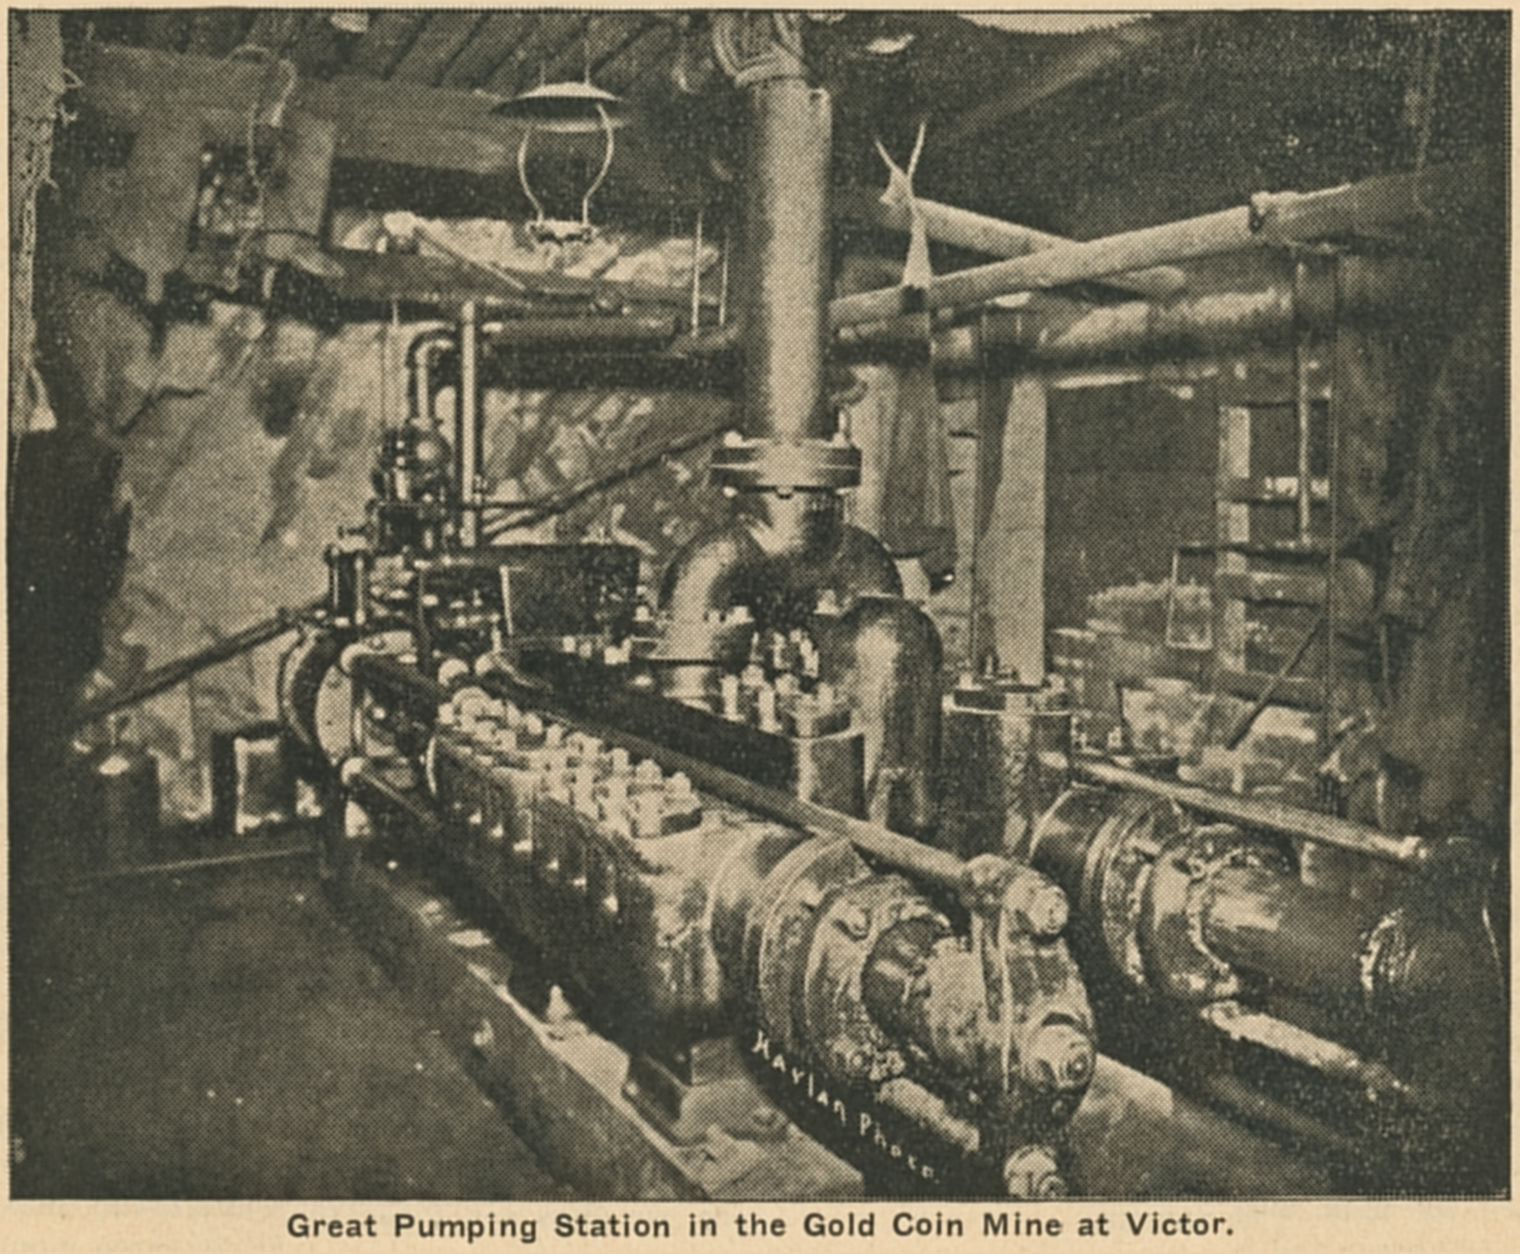 I never seen any mention of what level of the Gold Coin Mine this pump was located, but what I know is that it been said that they used the Columbine-Victor tunnel to transport water in a pipe from the Gold Coin mine to the Economic mill, so possible this has been connected to that system?